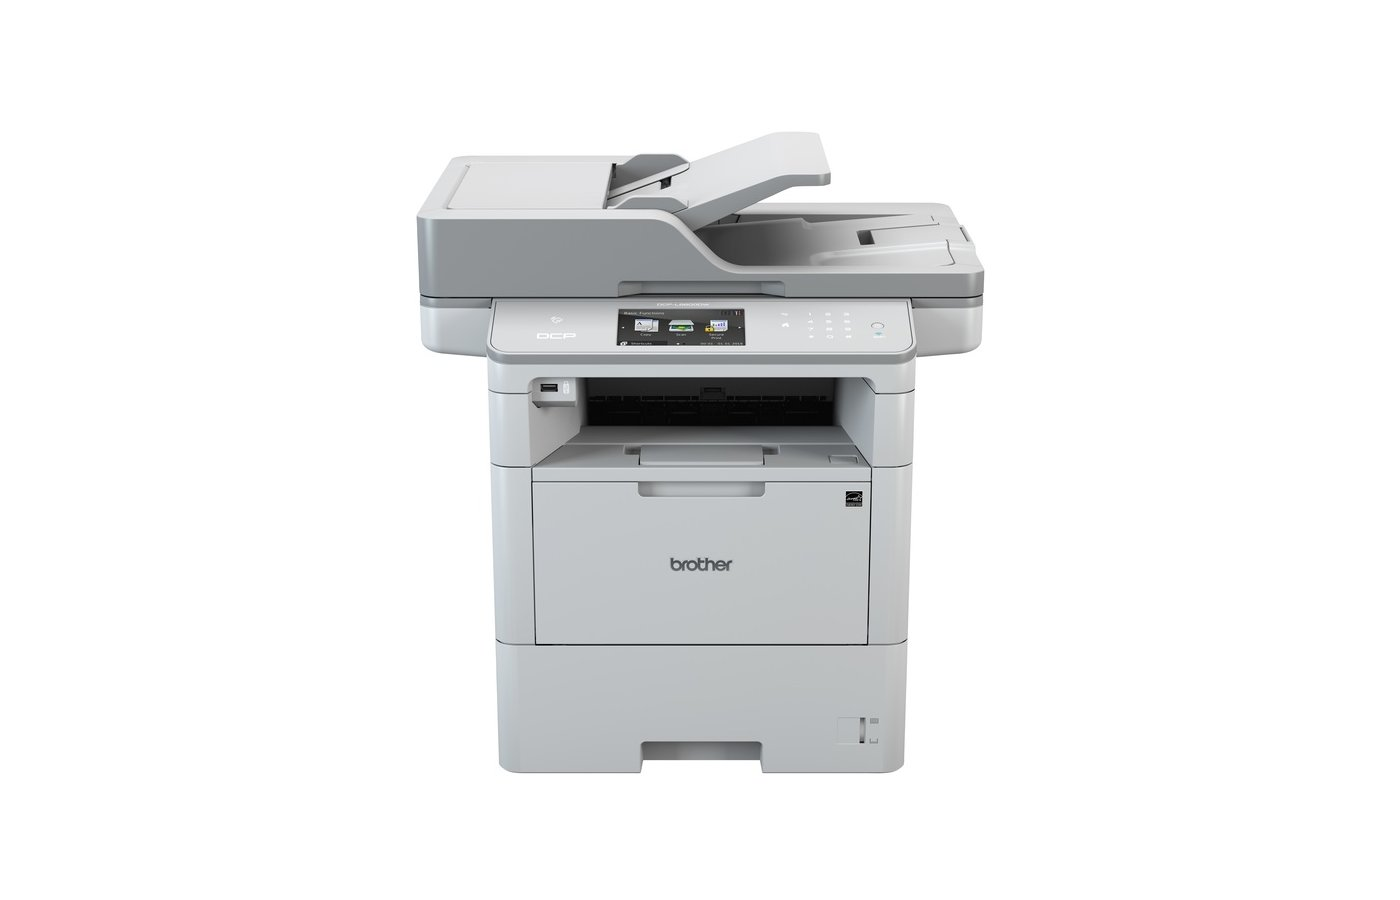 МФУ Brother DCP-L6600DW /DCPL6600DWR1/